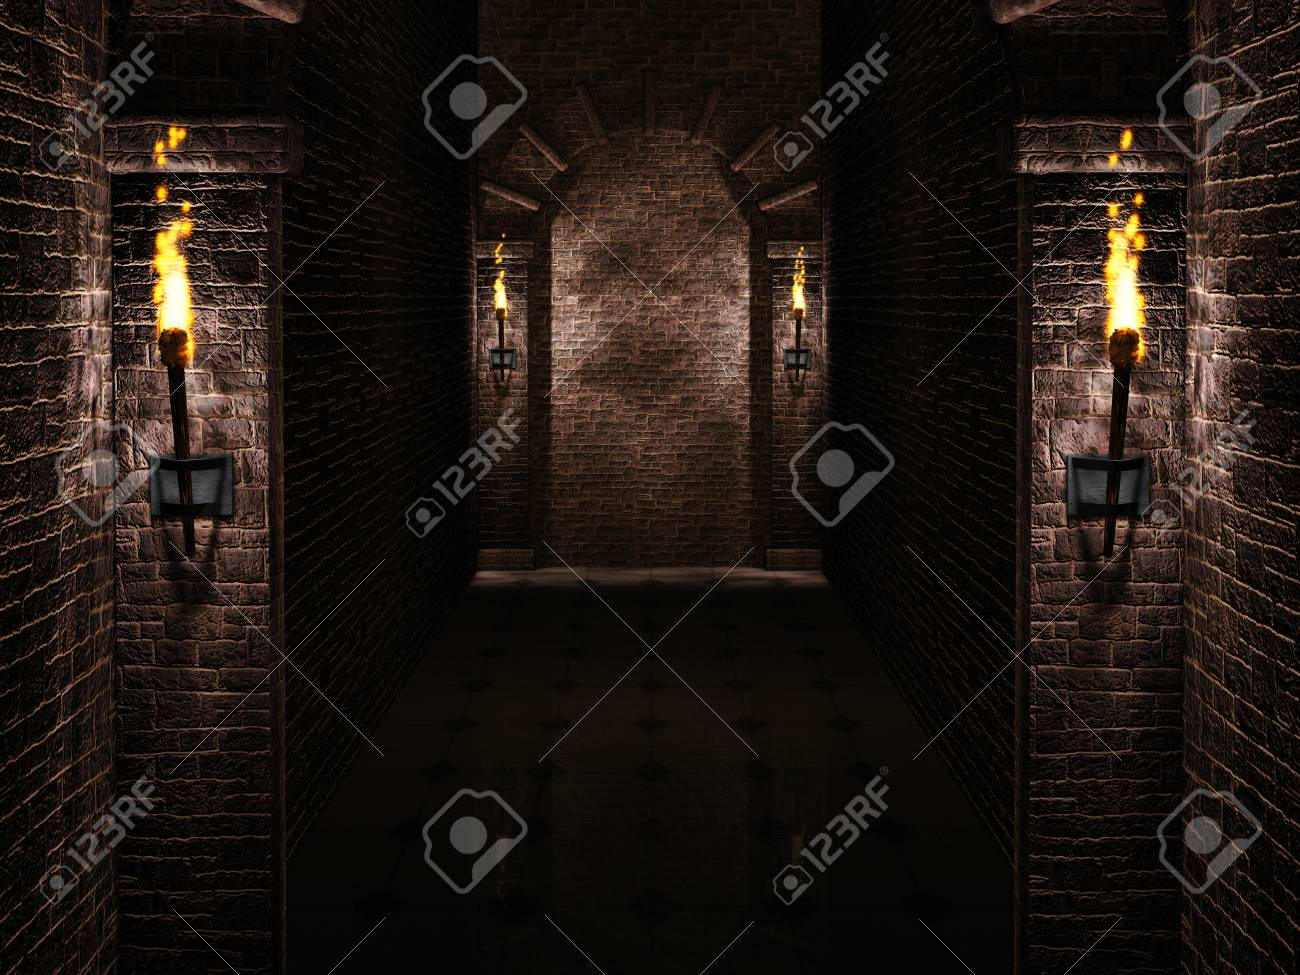 Arches With Torches Background Stock Photo Picture And Royalty 1300x975